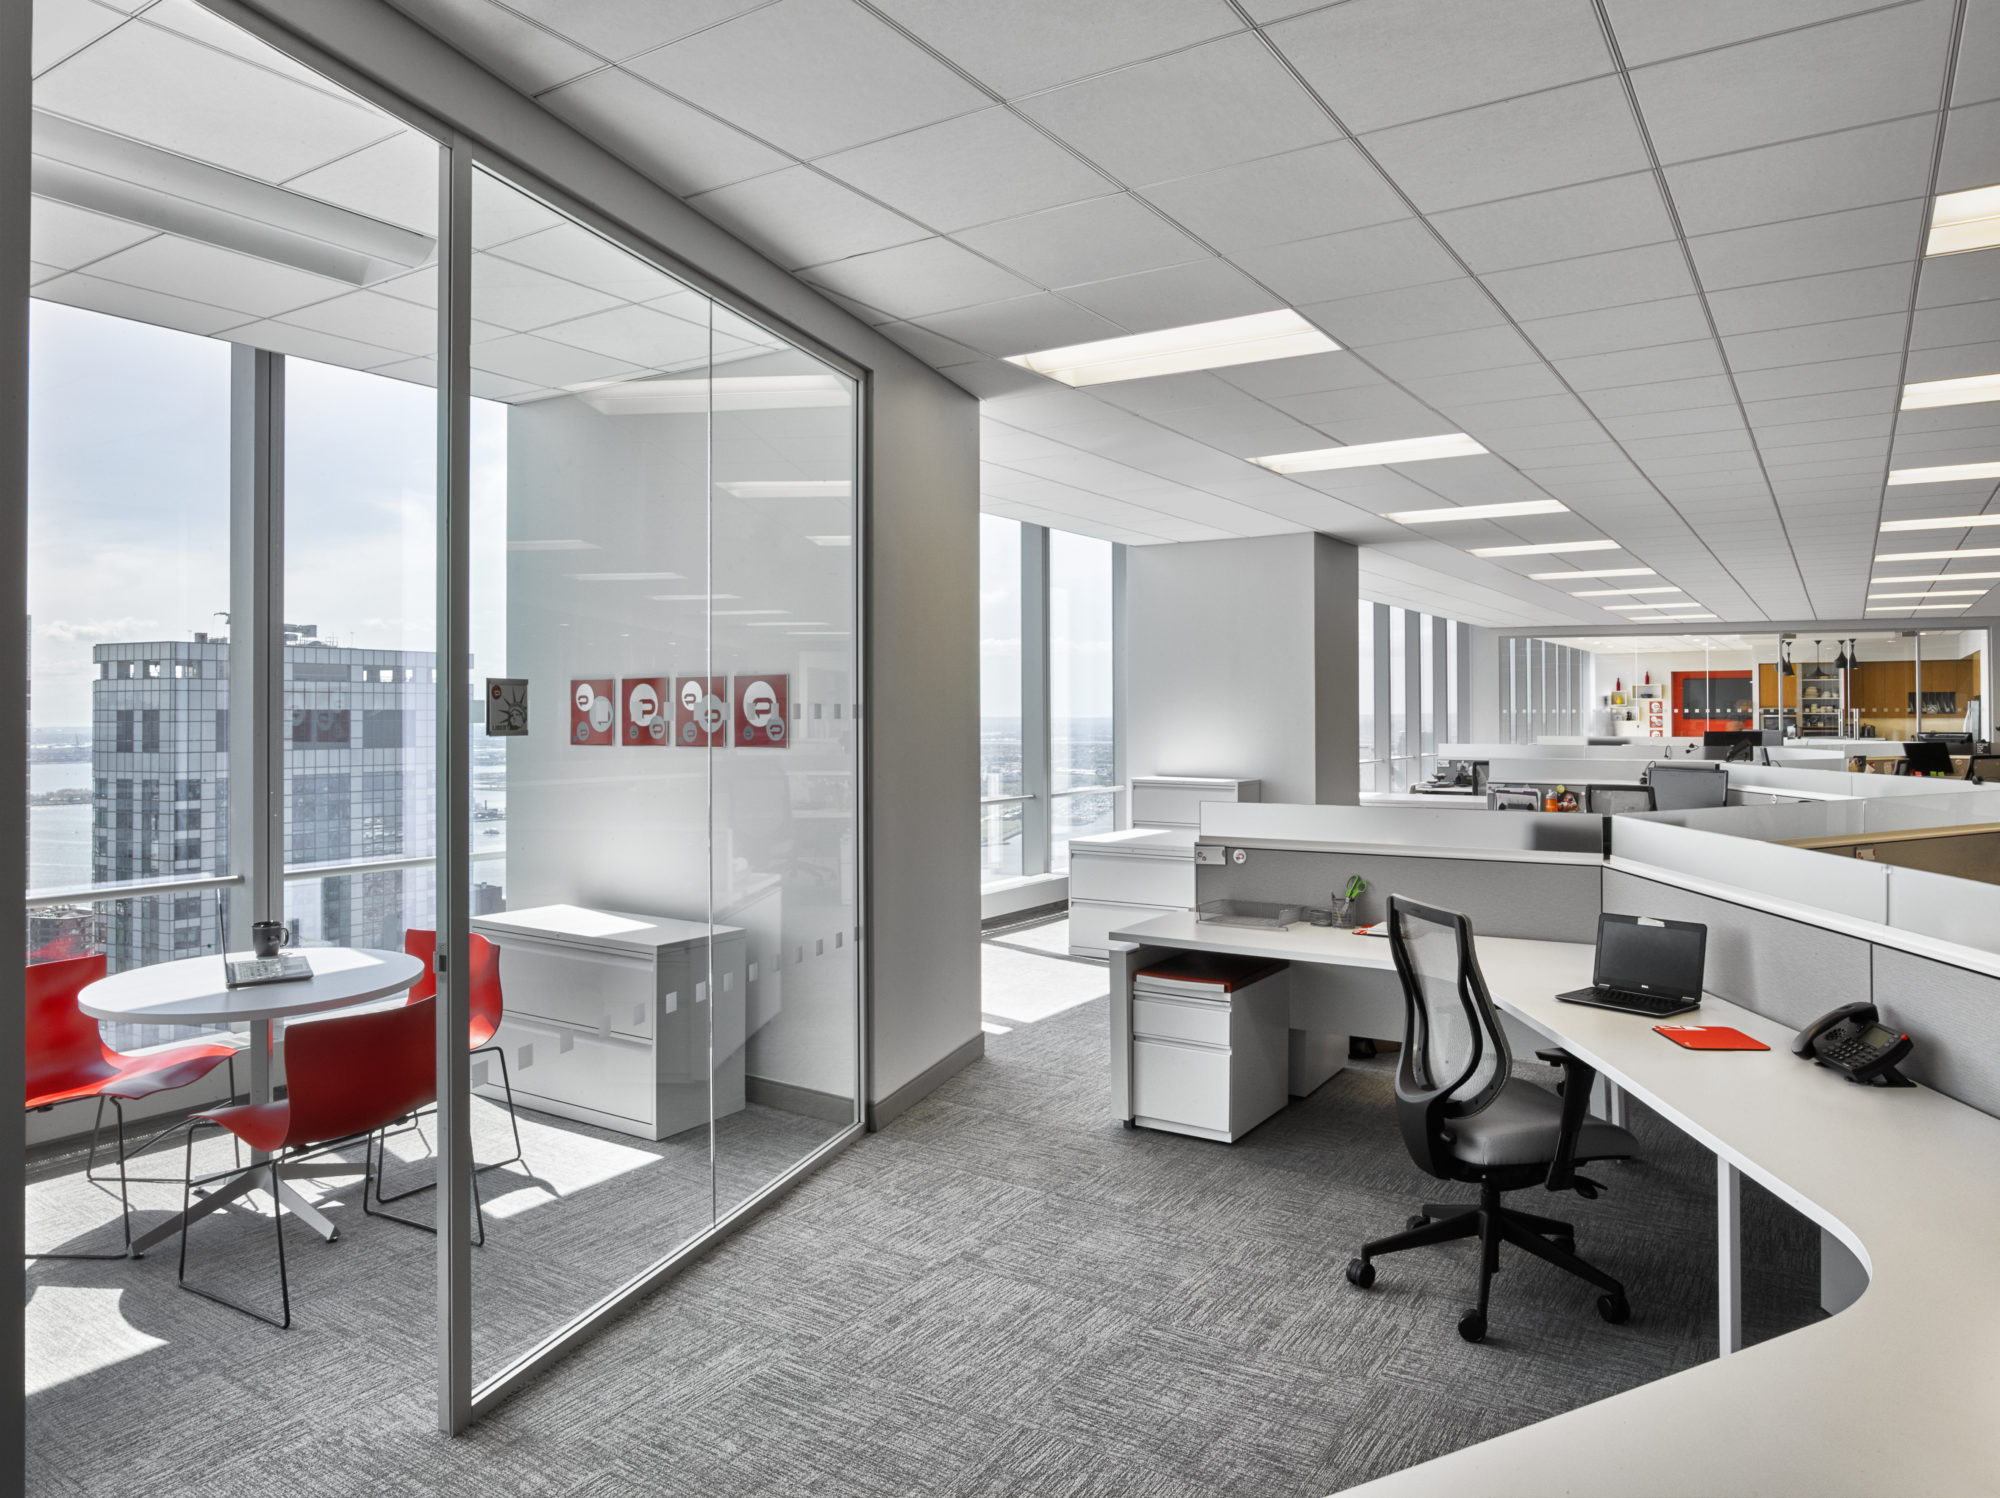 Small private meeting room beside open working spaces in the offices of Padilla CRT, a communications agency located in New York. MEP by 2L Engineering.